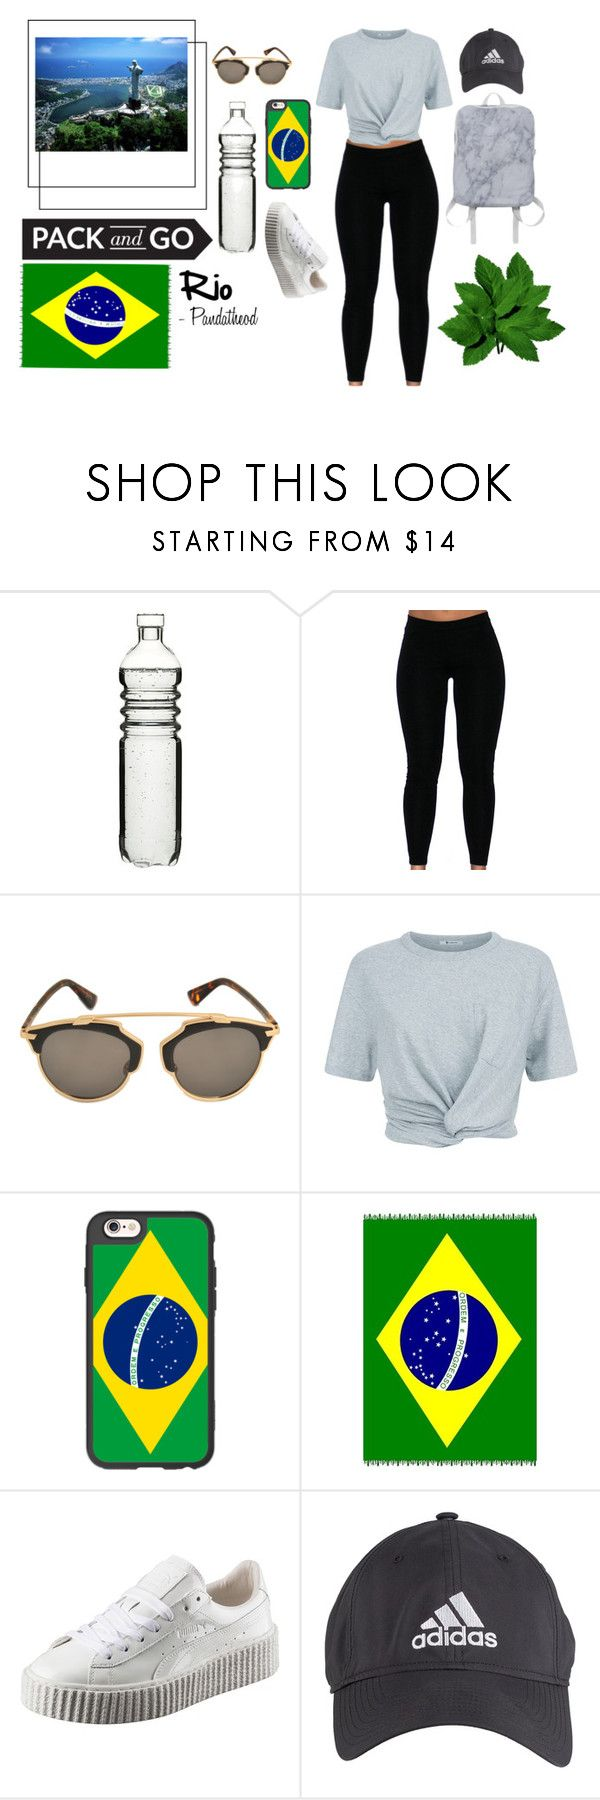 """""""Lets Go visit Rio"""" by pandatheod ❤ liked on Polyvore featuring Dot & Bo, Christian Dior, T By Alexander Wang, Casetify, Puma, adidas and rio"""